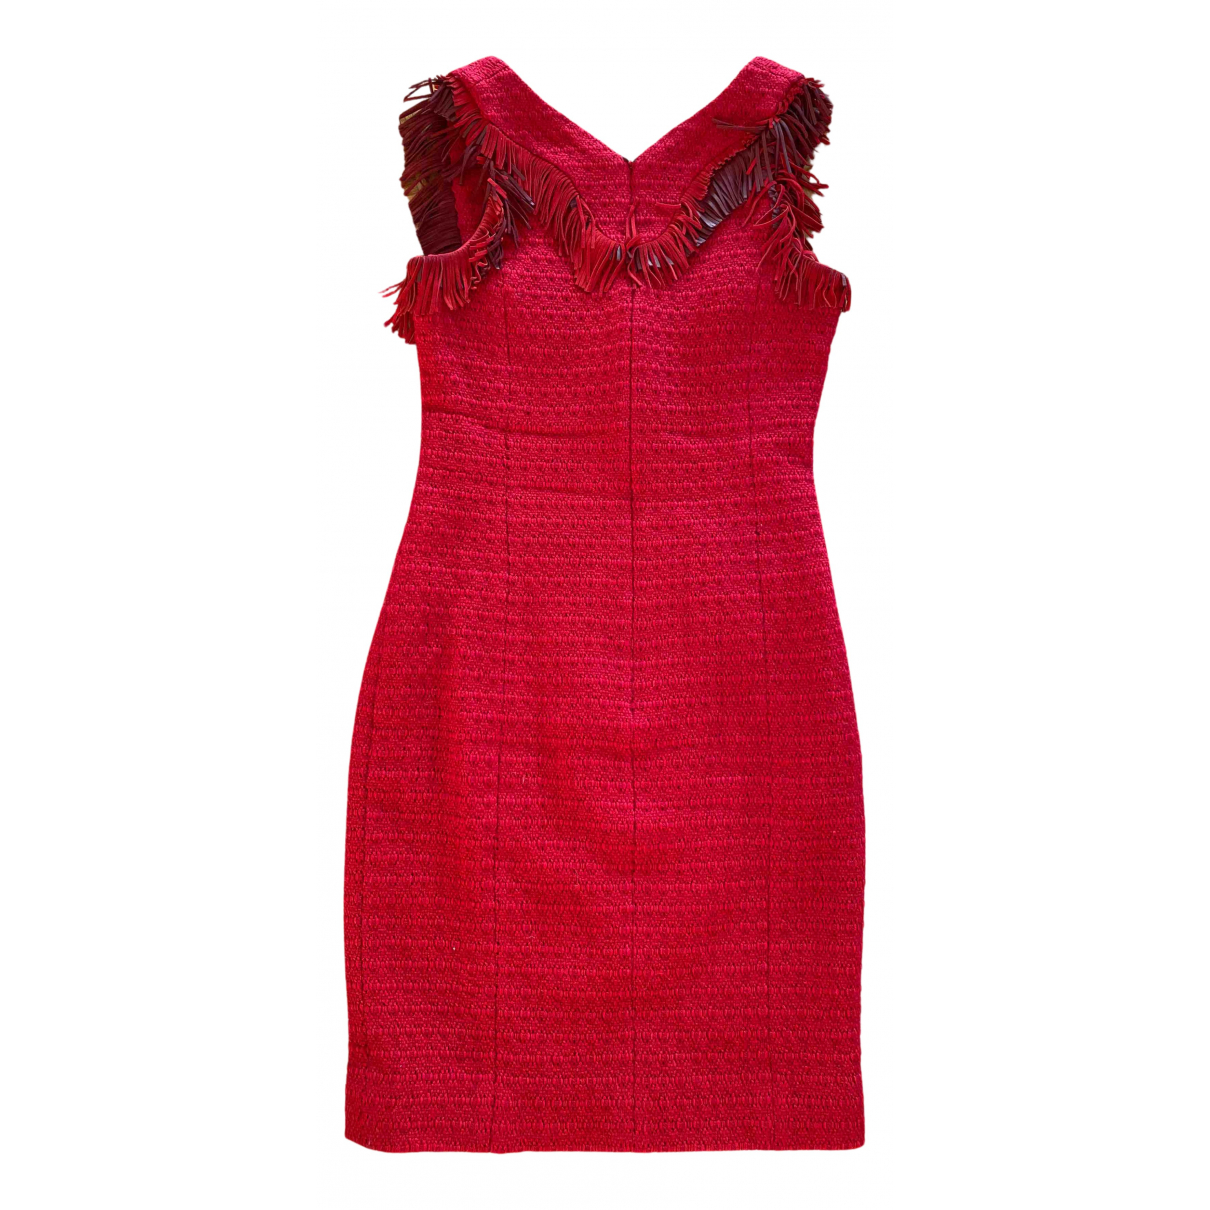 Chanel \N Kleid in  Rot Wolle